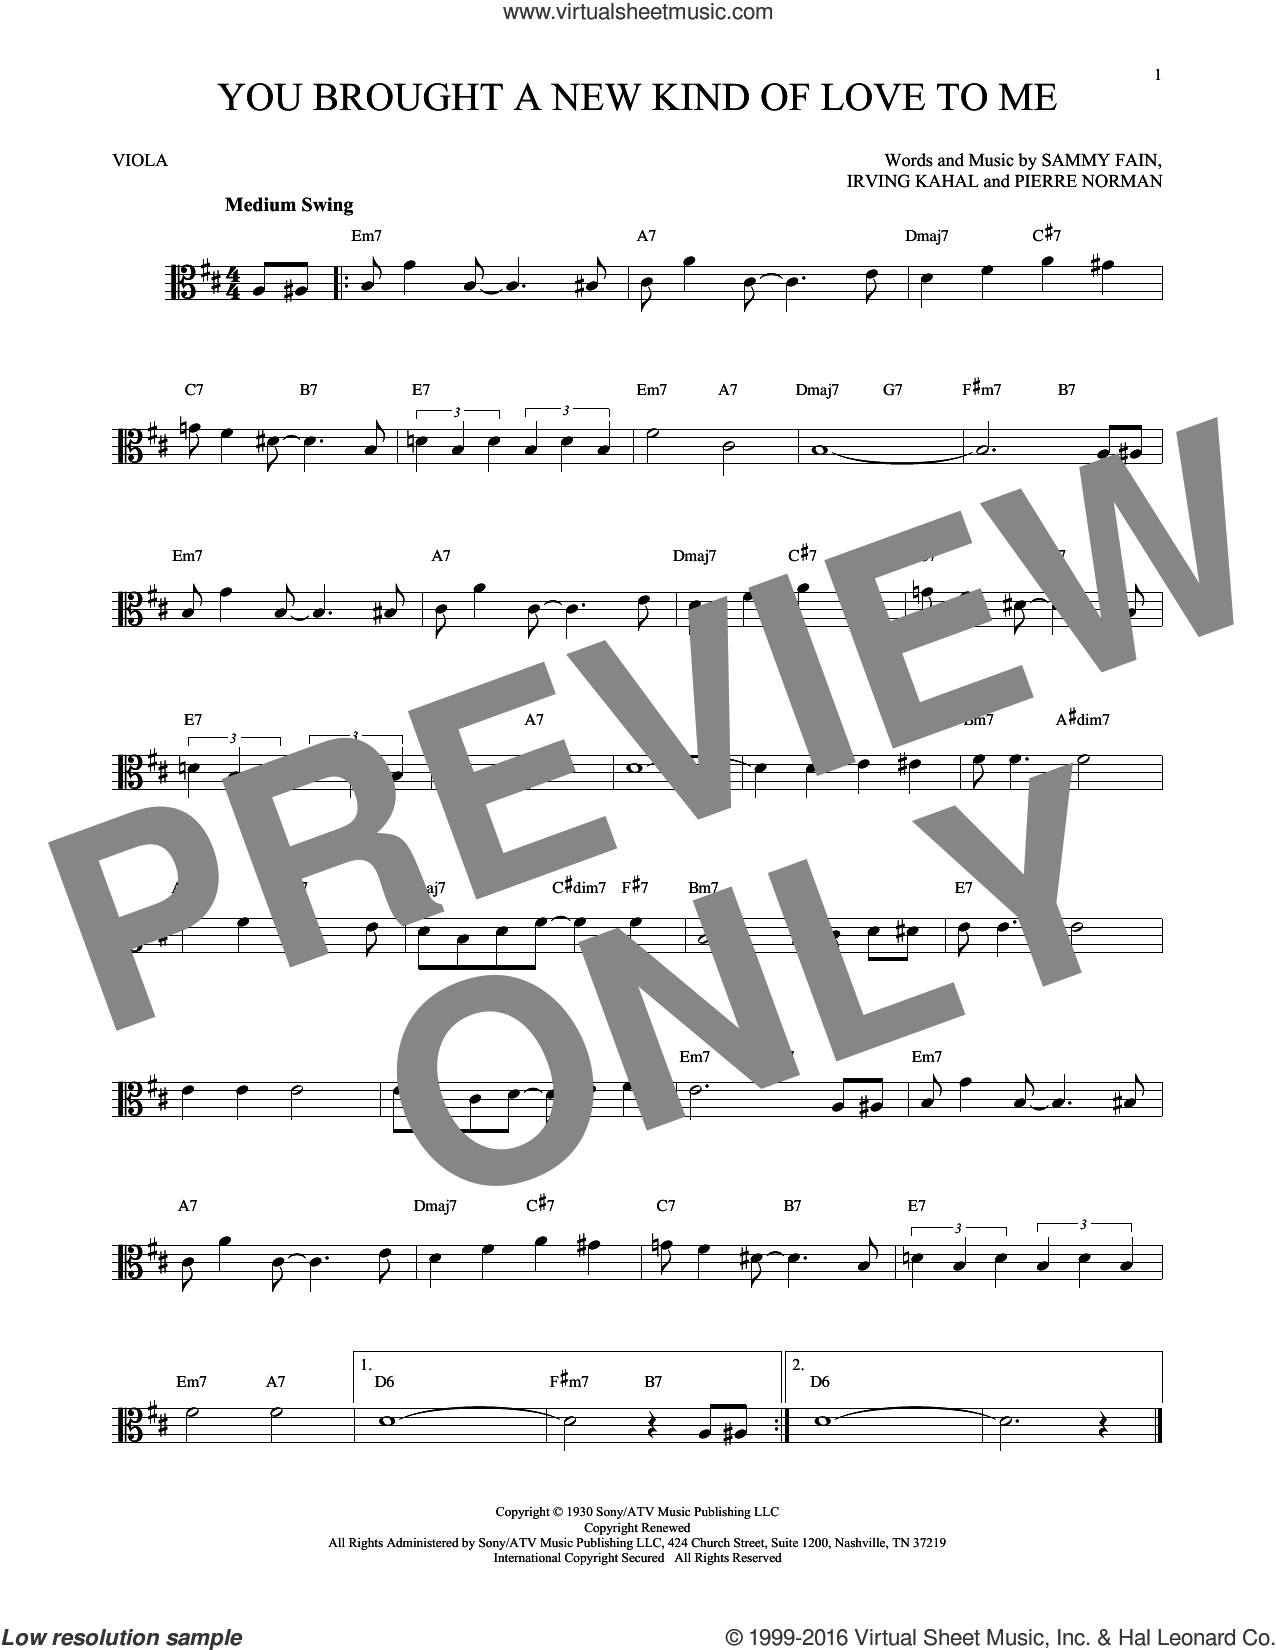 You Brought A New Kind Of Love To Me sheet music for viola solo by Sammy Fain and Irving Kahal. Score Image Preview.